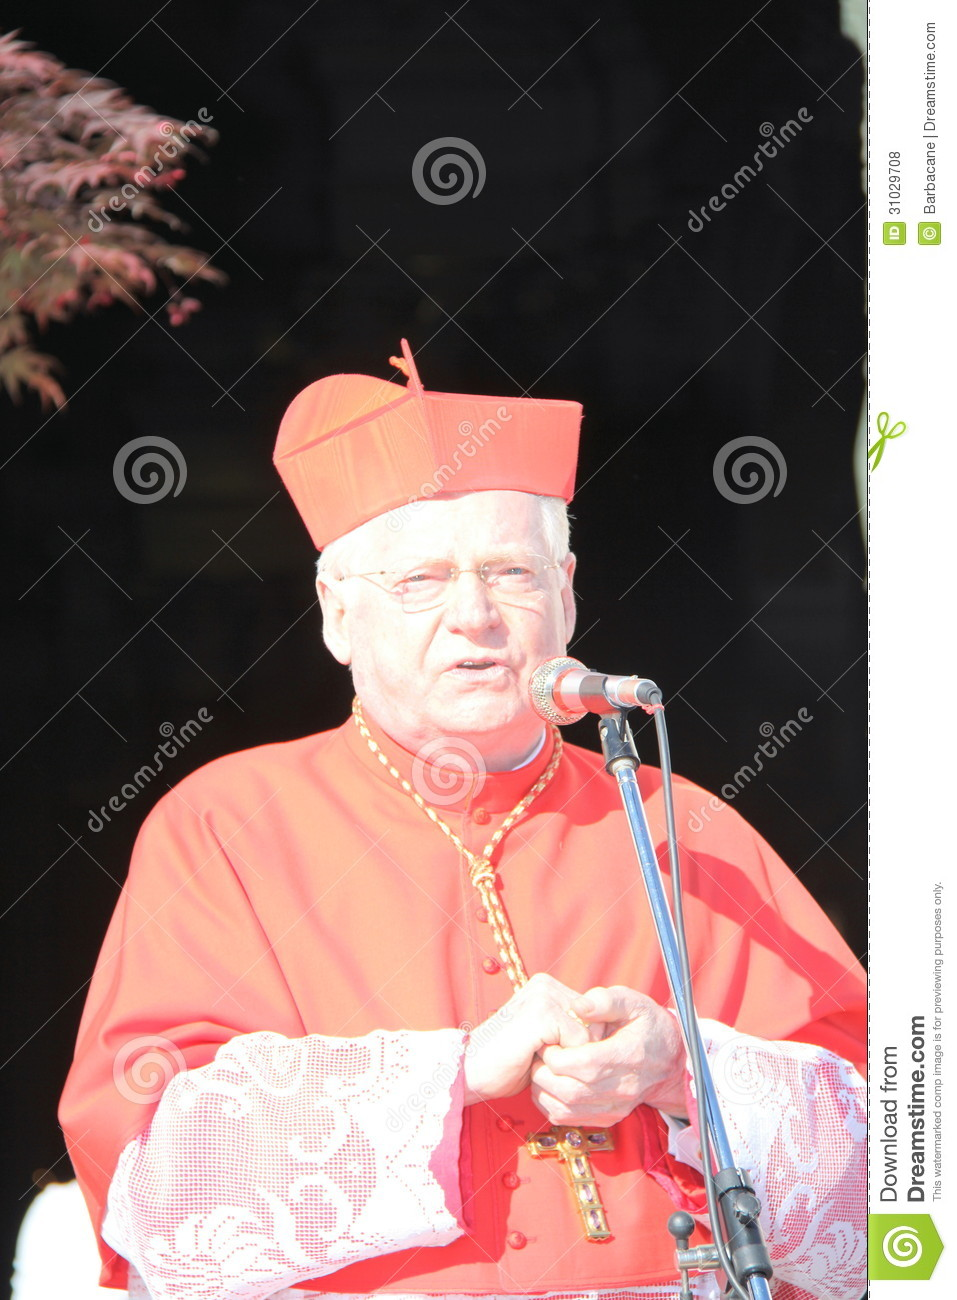 foto cardinale angelo scola milan - photo#19